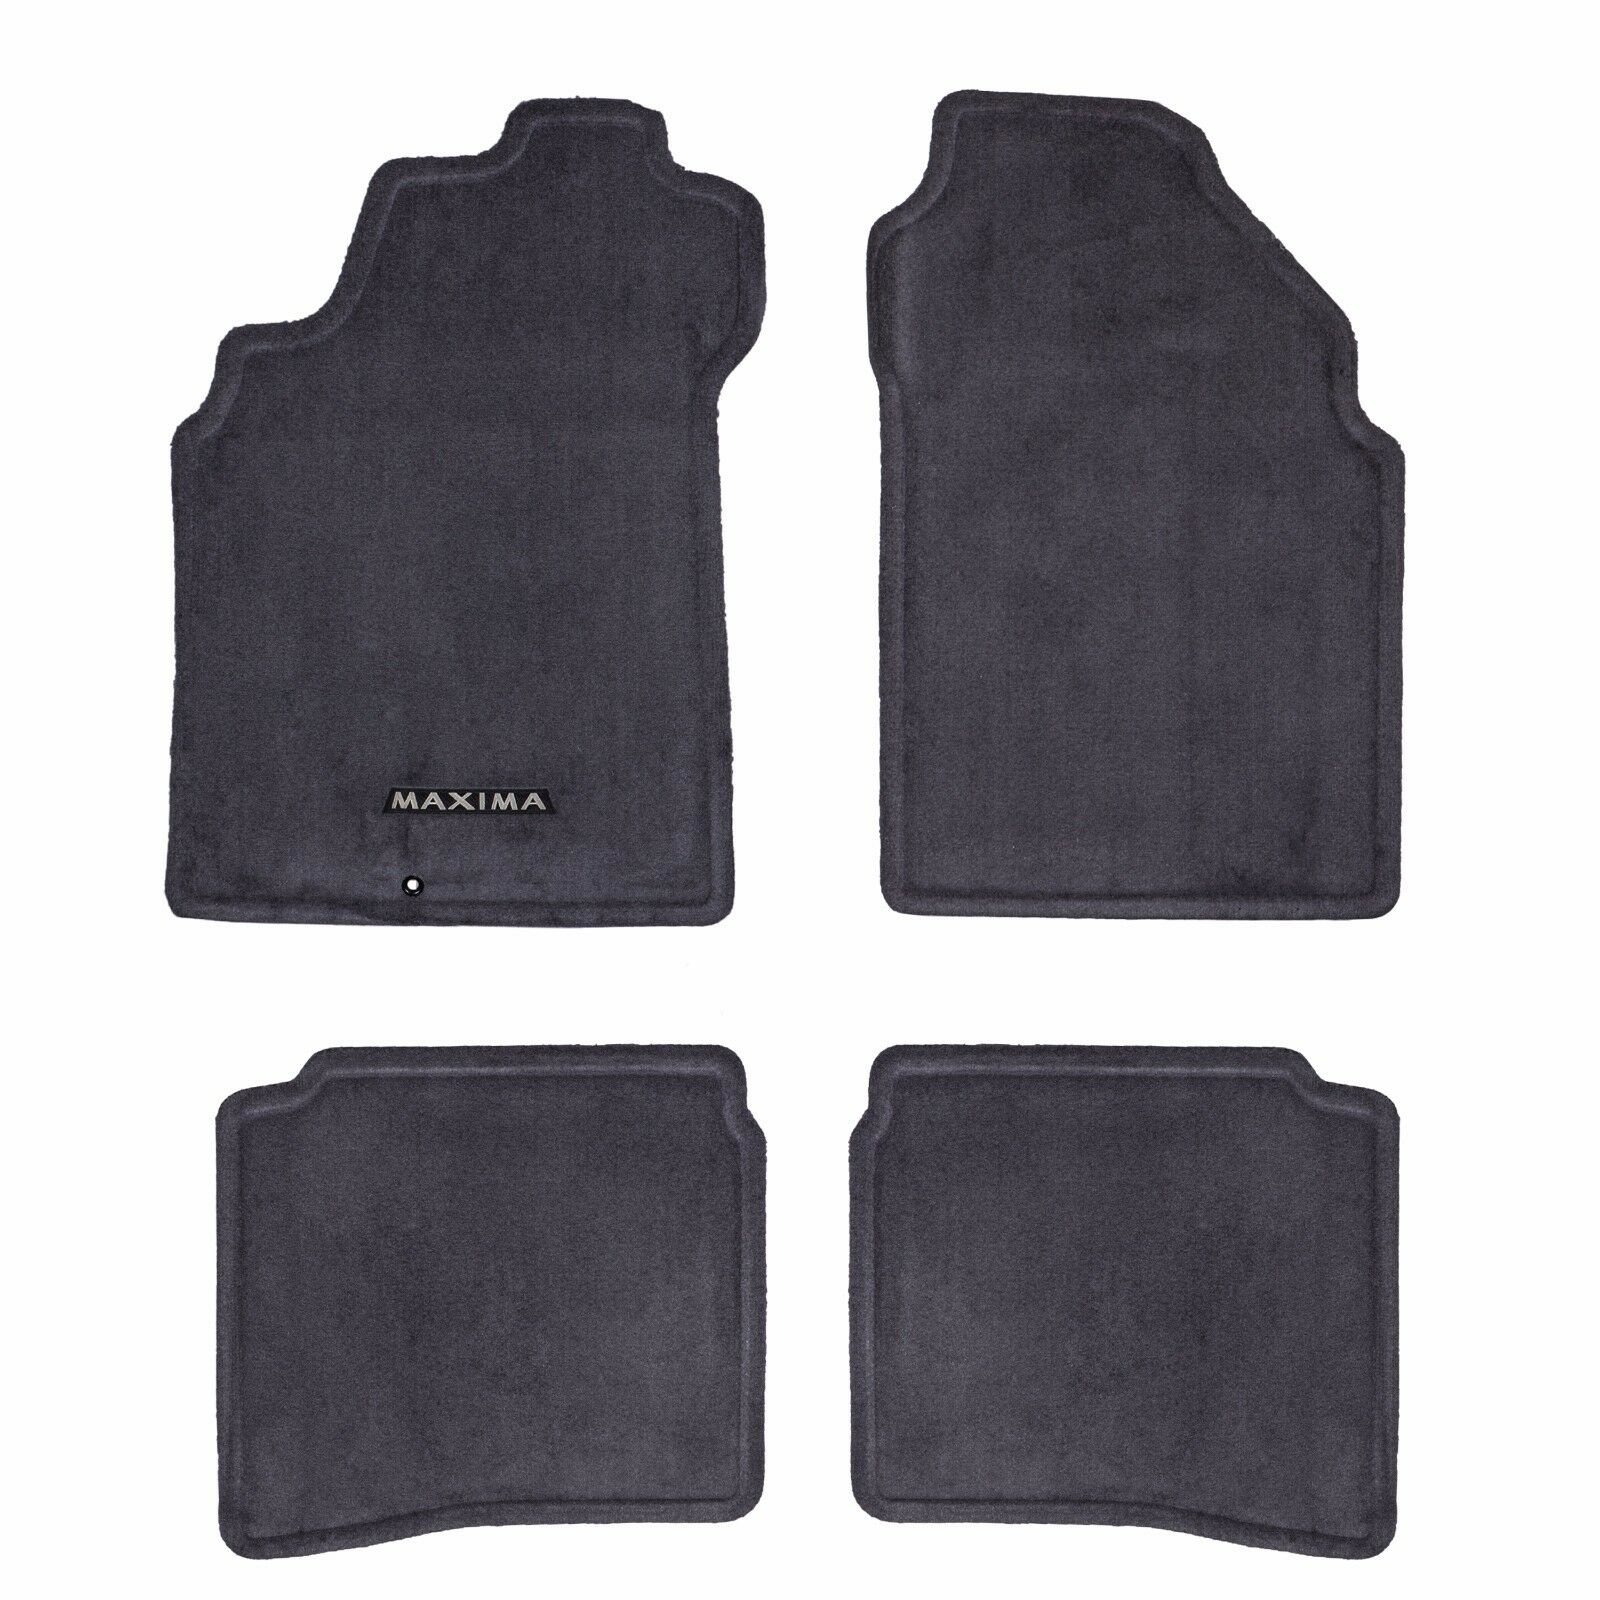 01 03 Nissan Maxima Carpeted Carpet CHARCOAL GREY Floor Mats Front U0026 Rear  Set OE 1 Of 4Only 0 Available See More